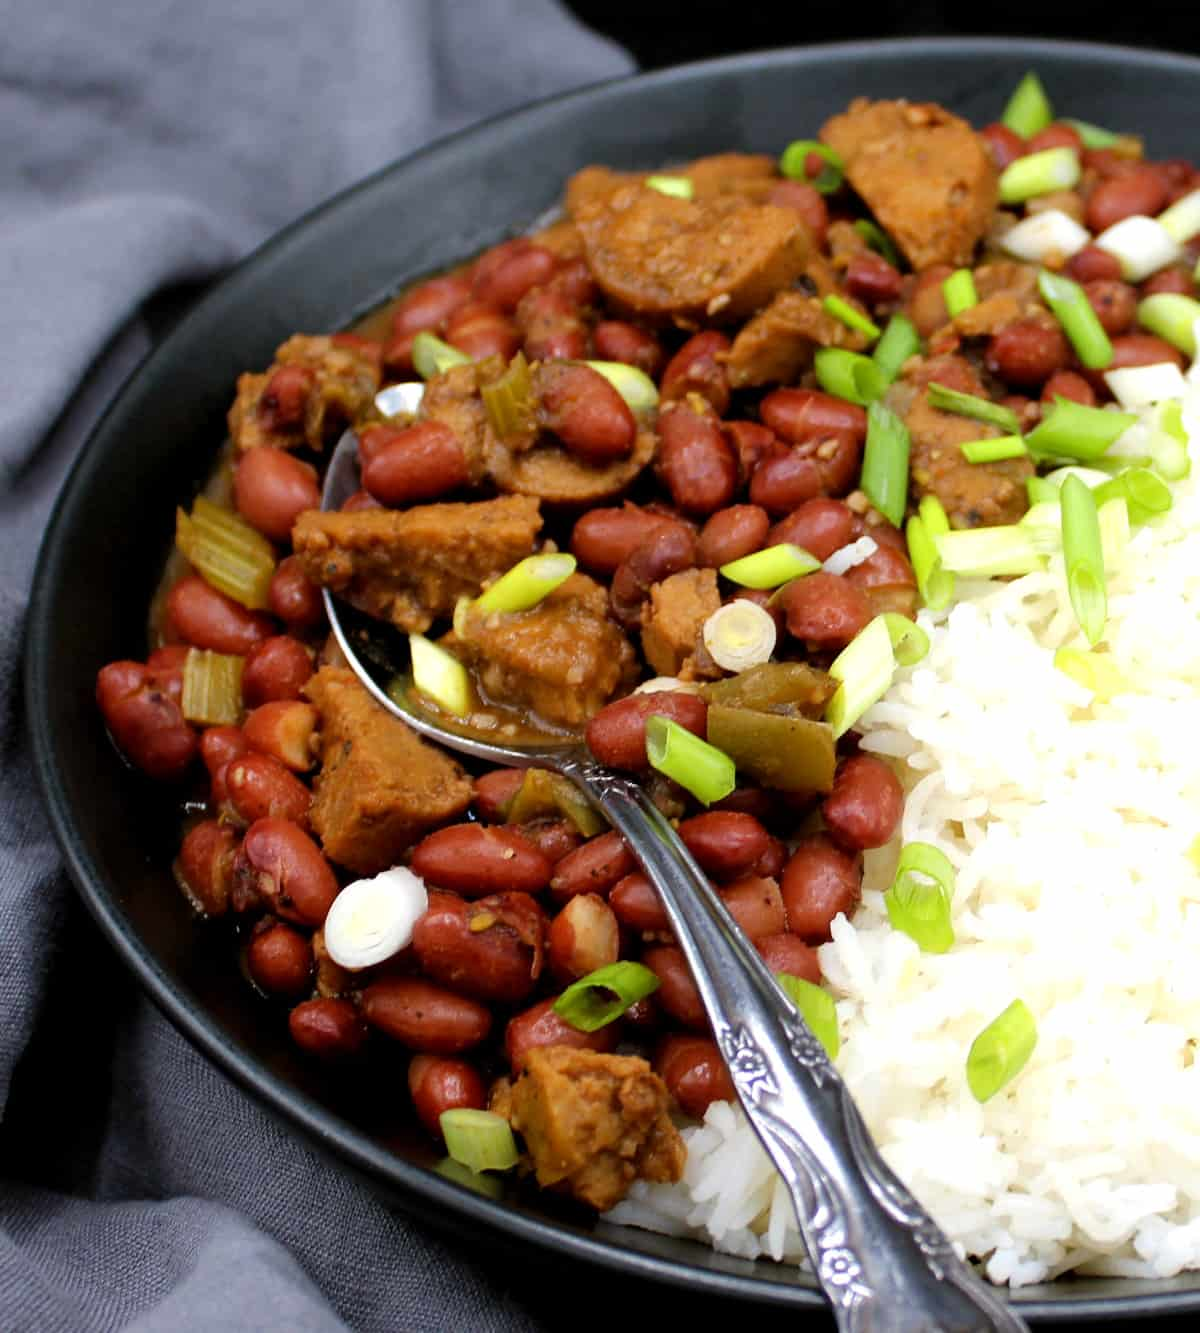 A closeup of vegan red beans and rice garnished with scallions in a black bowl with a decorative spoon against a gray napkin